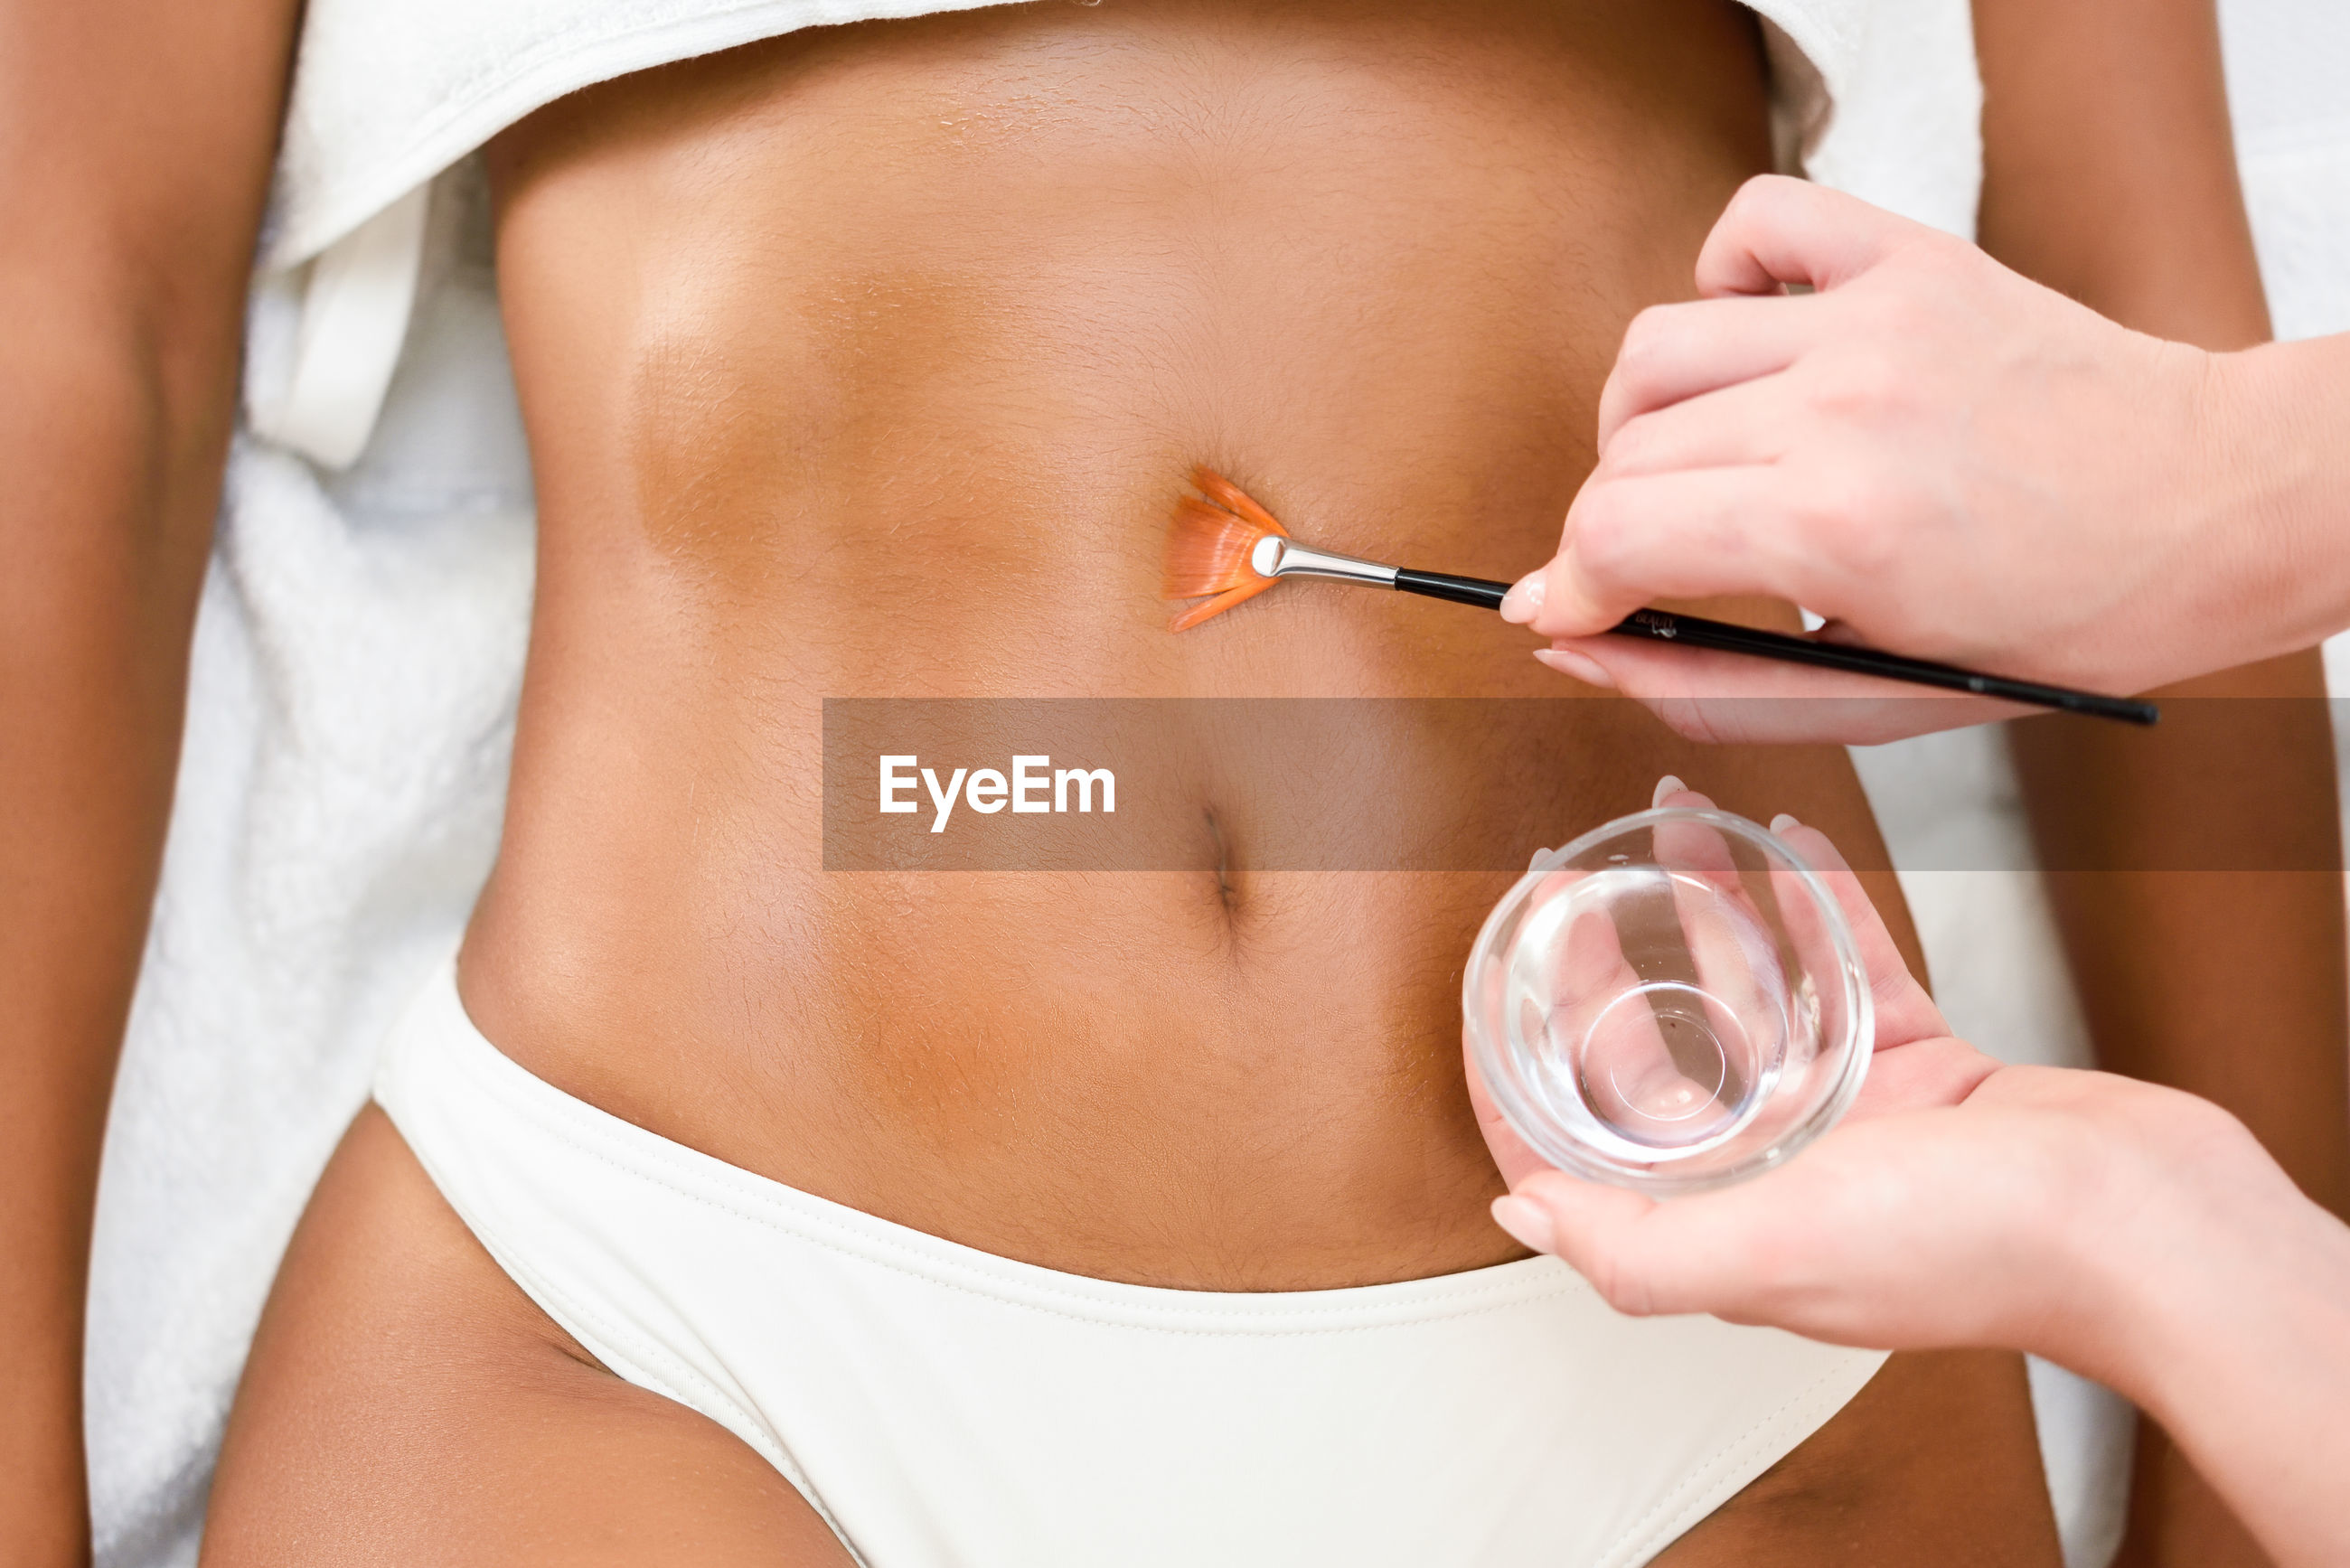 Cropped hands applying oil to midsection of woman